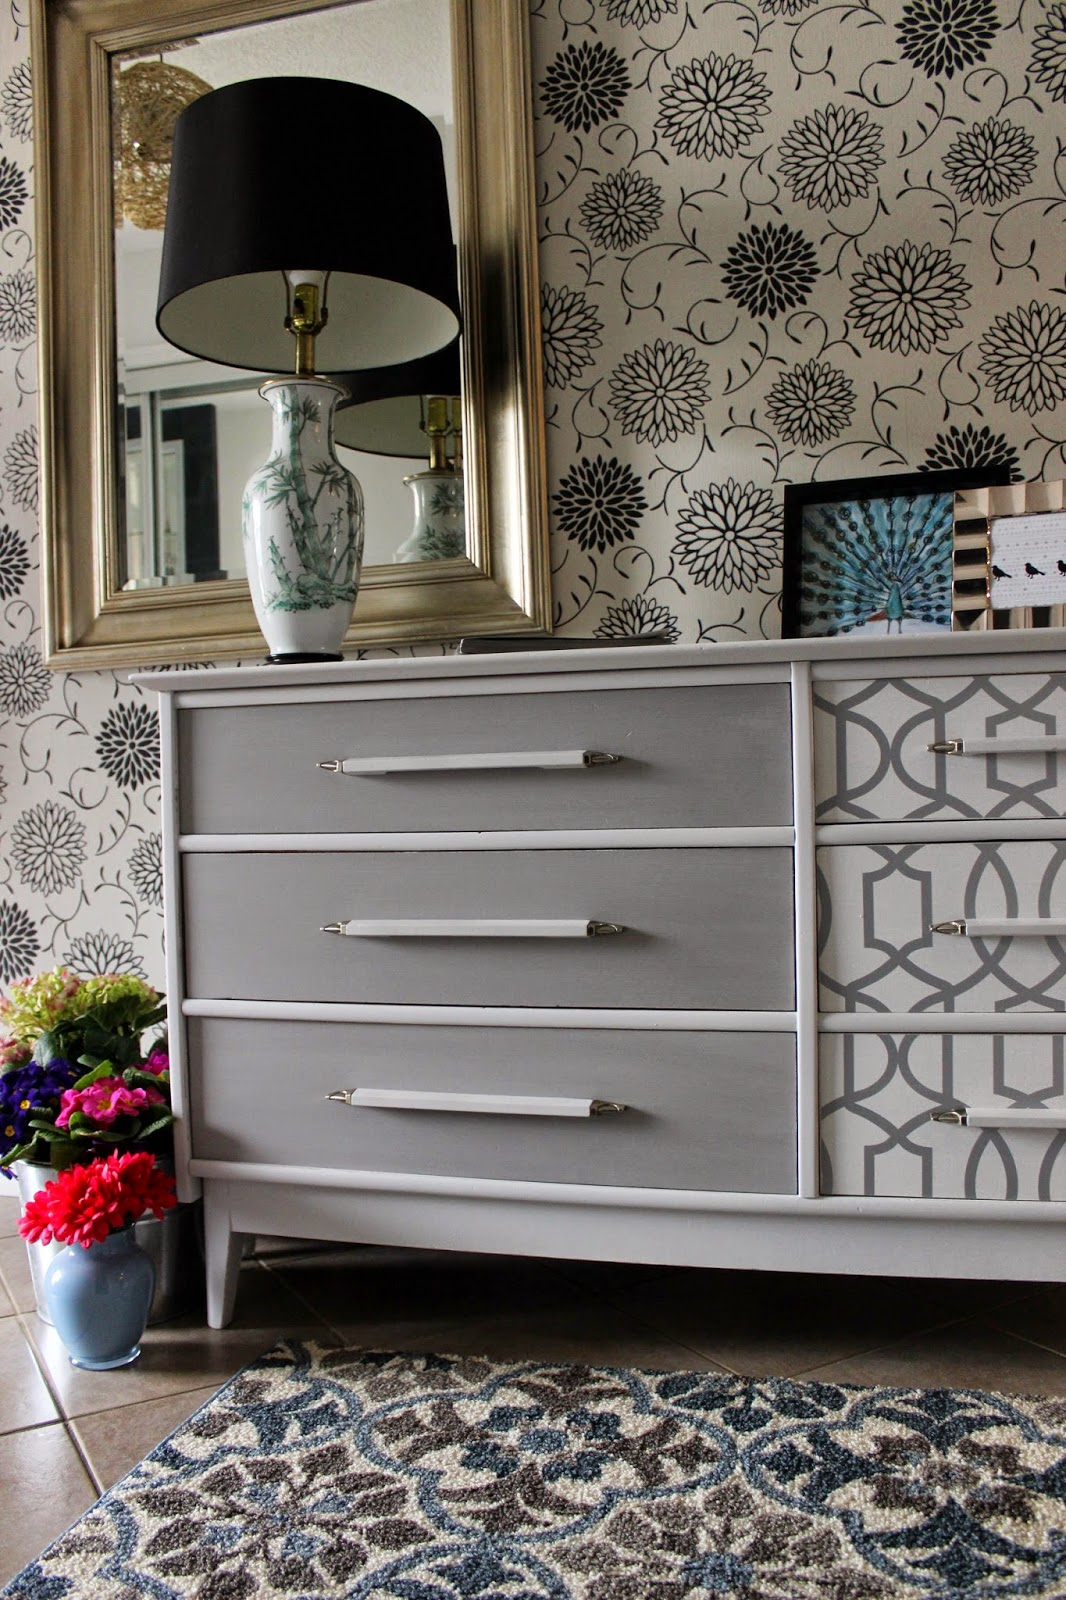 http://re-tiqued.blogspot.ca/2015/04/wallpaper-and-gray-dresser.html